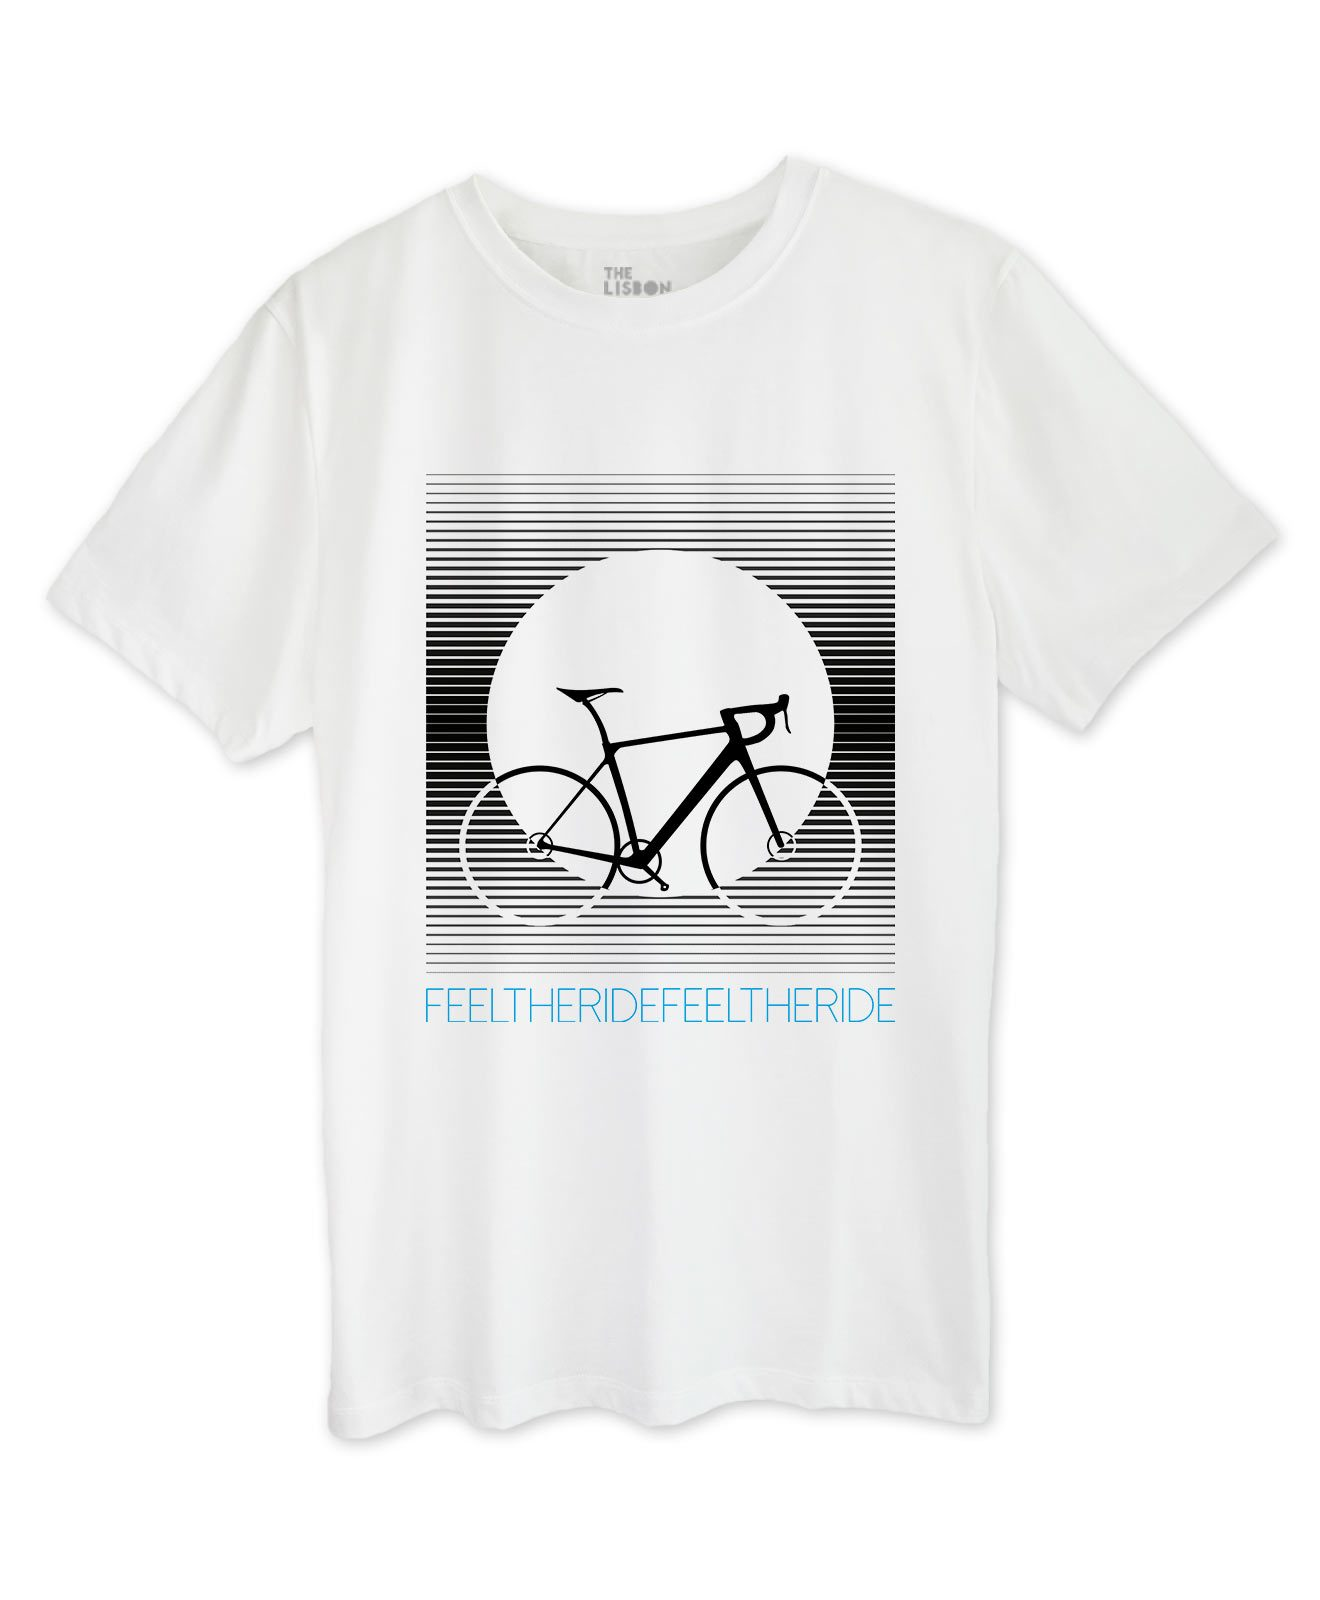 Bike Stripes Road T-shirt white